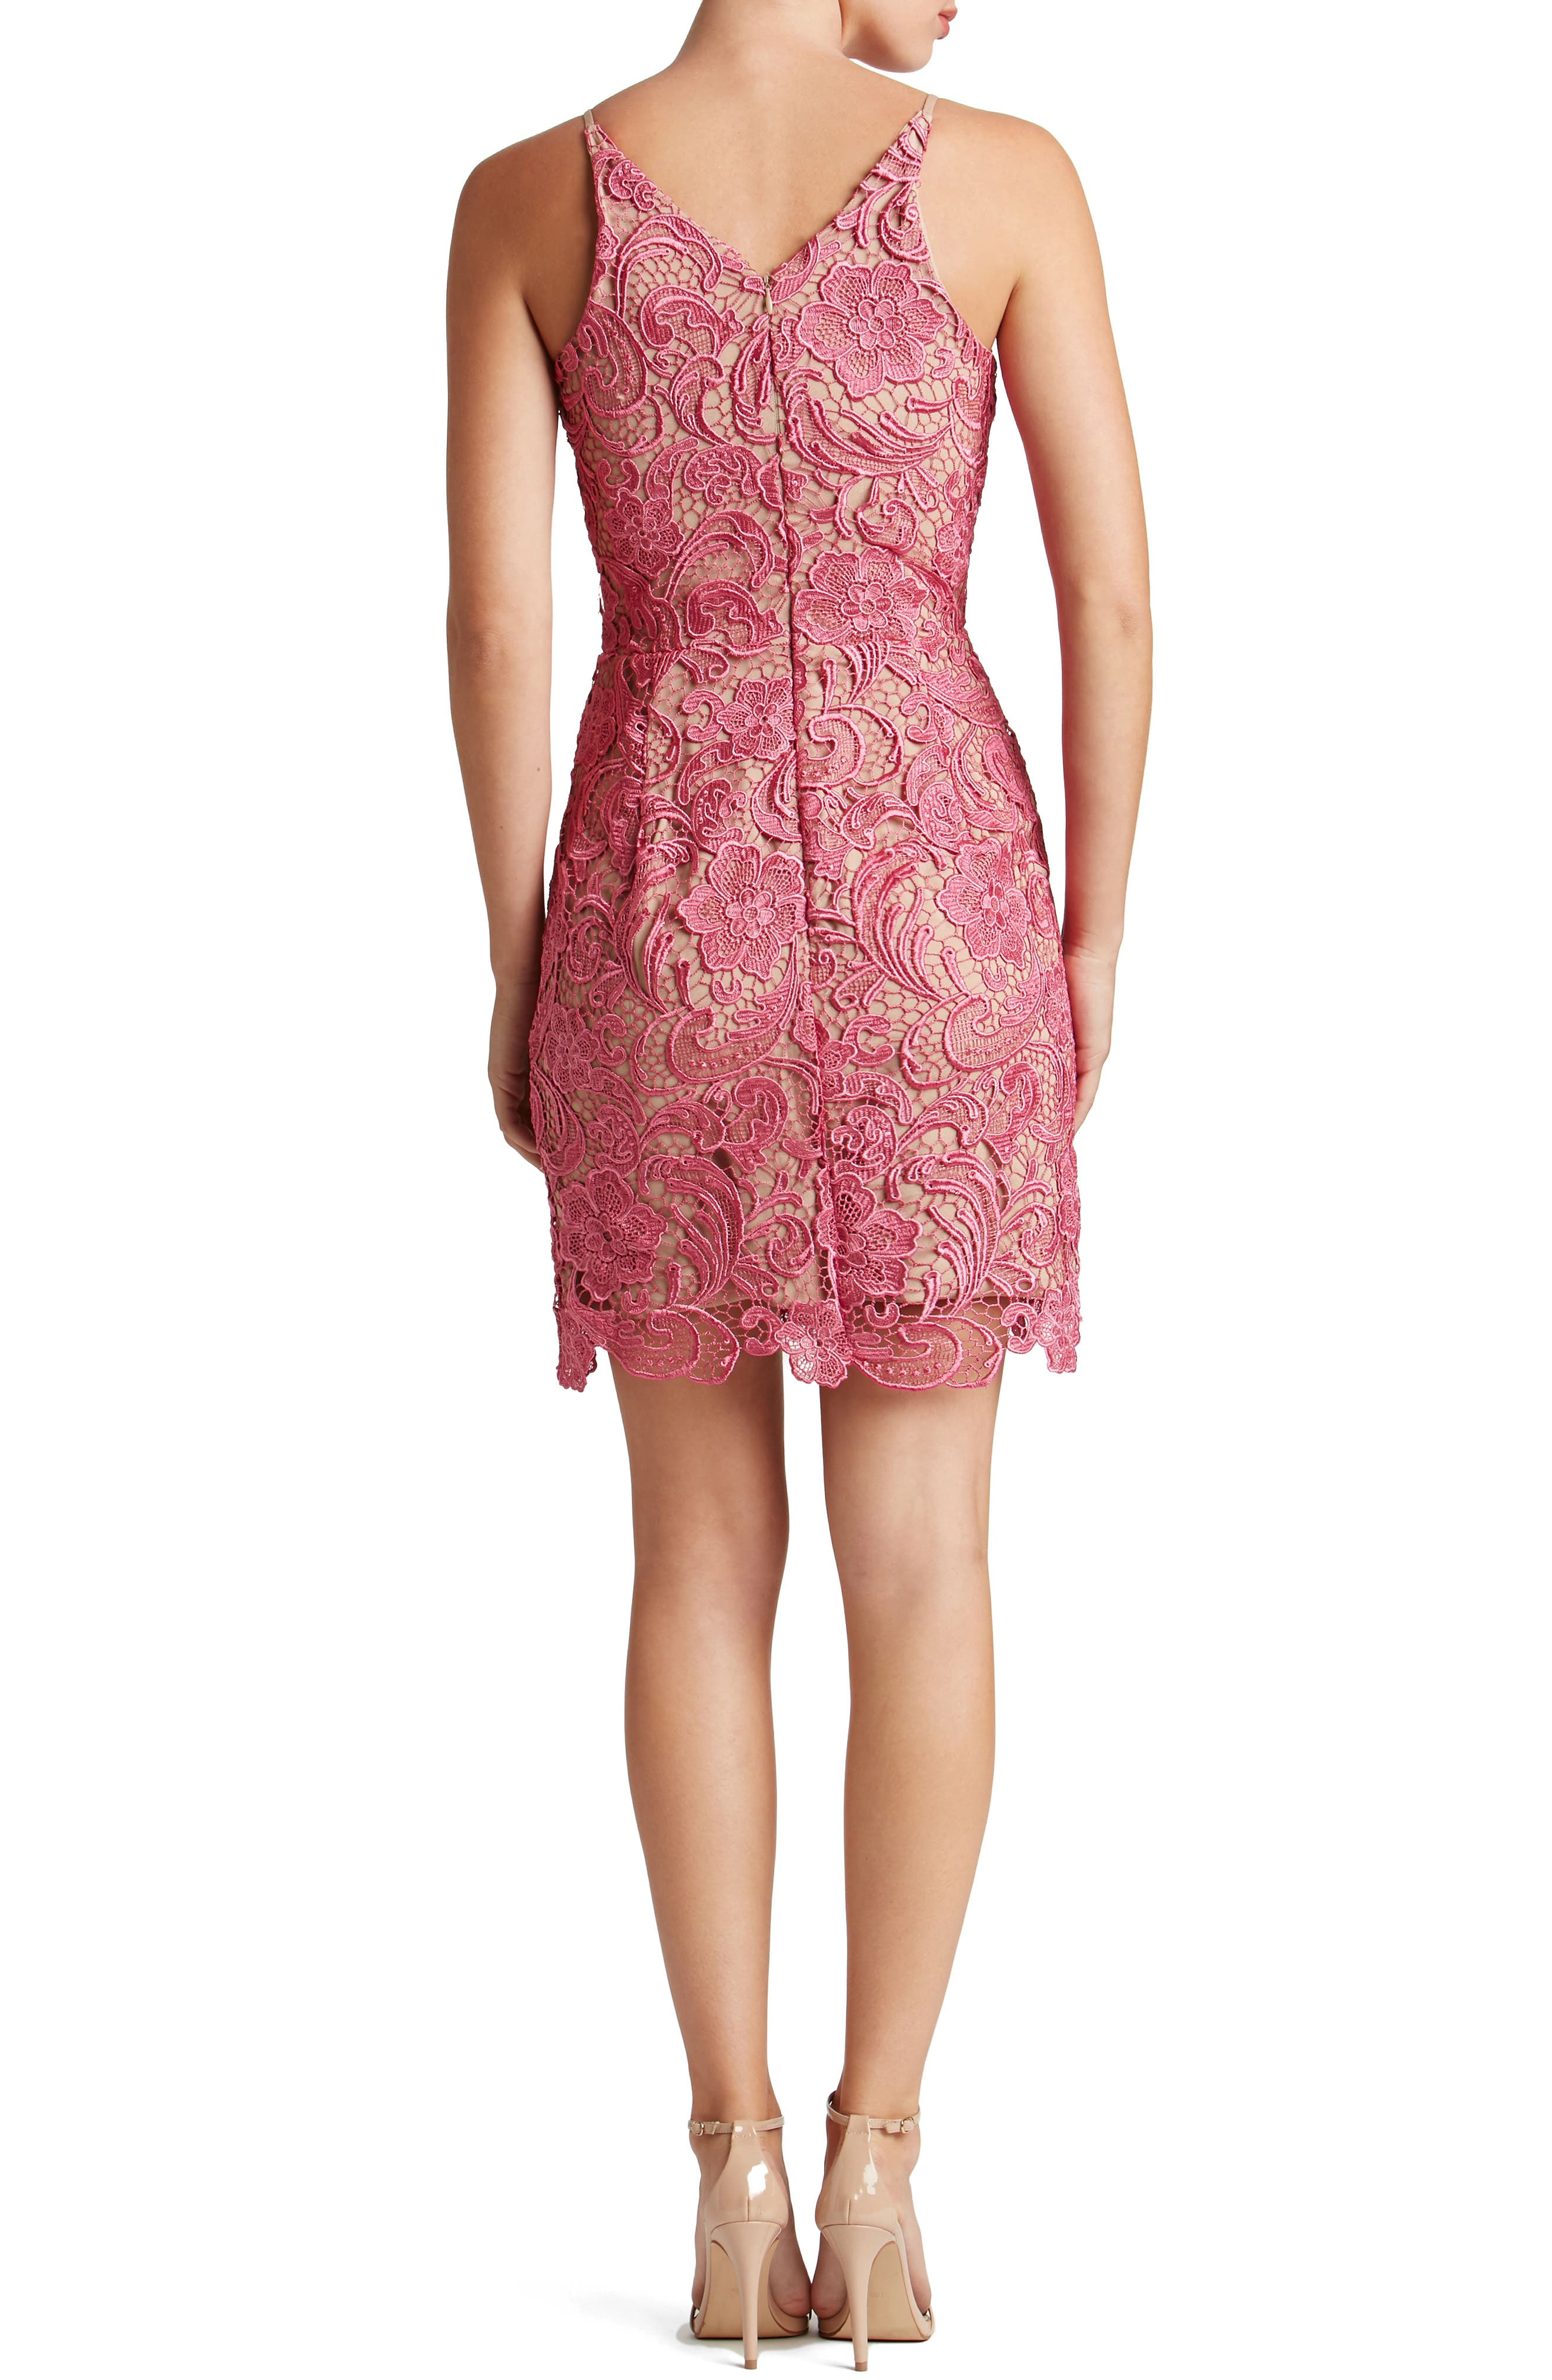 2018 Prom Dresses Nordstrom - oukas.info